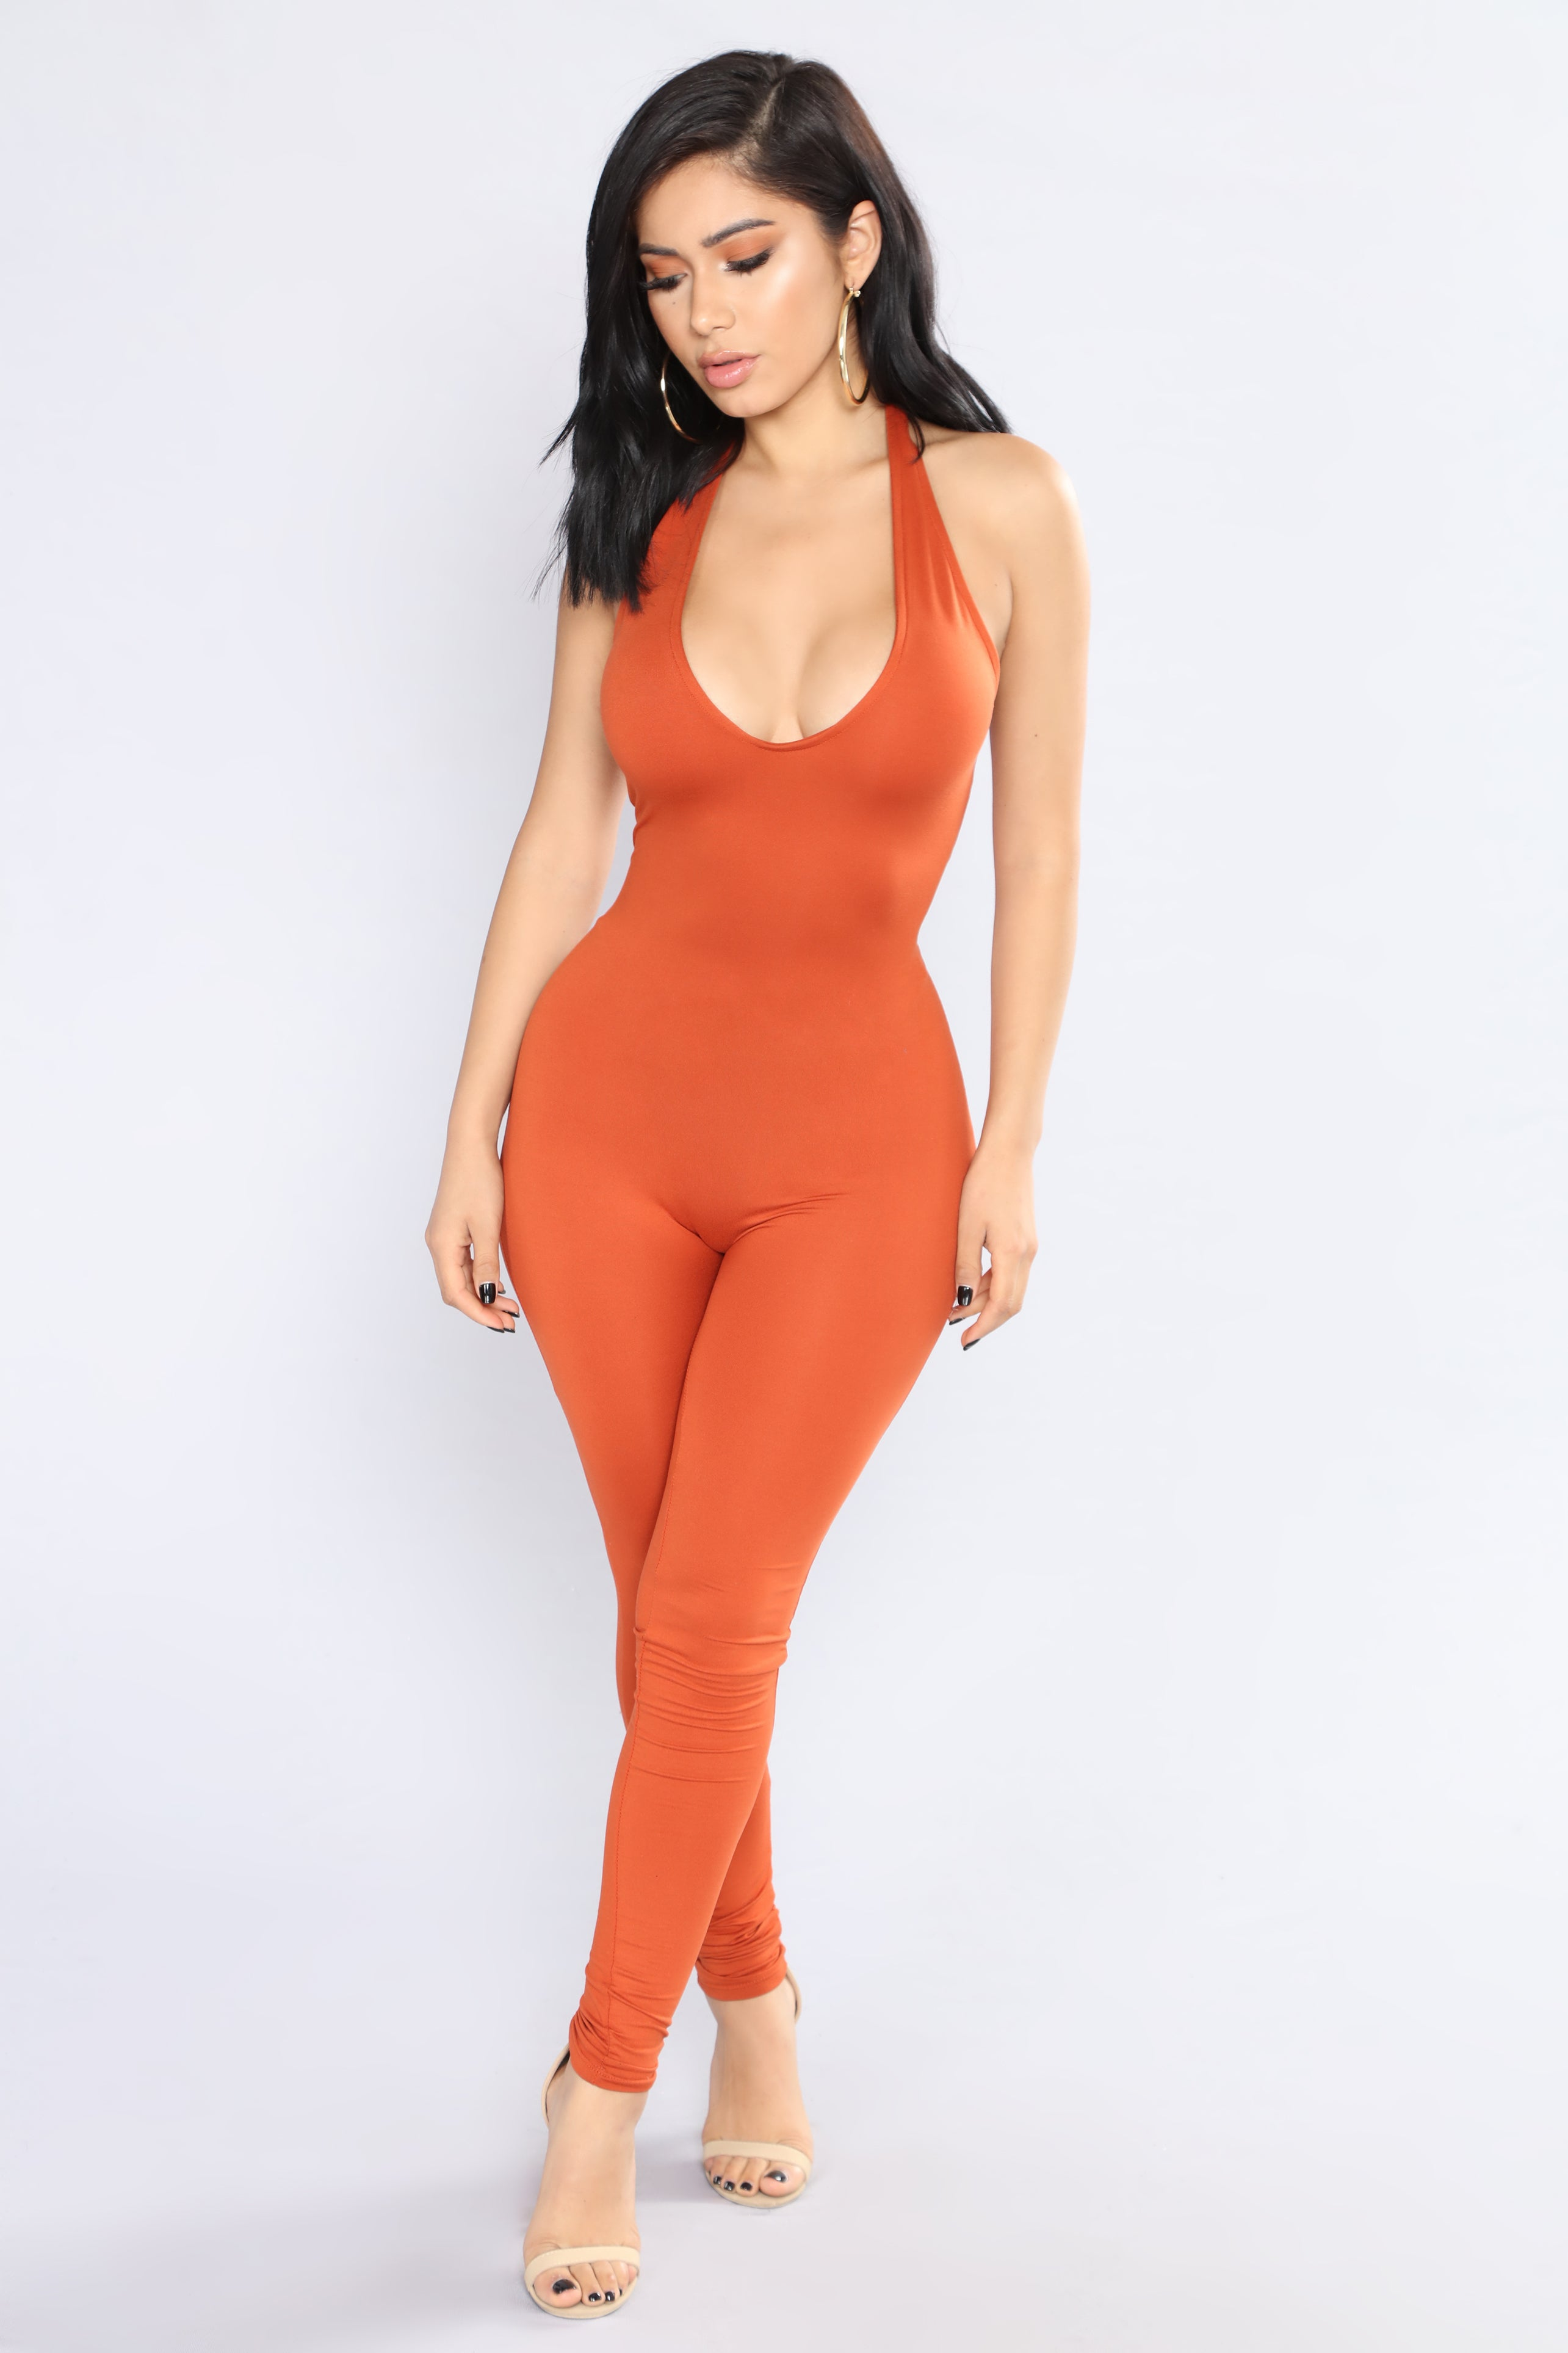 e96991eeeeb2 Fashion Nova 11-03-17-884.JPG v 1530829045